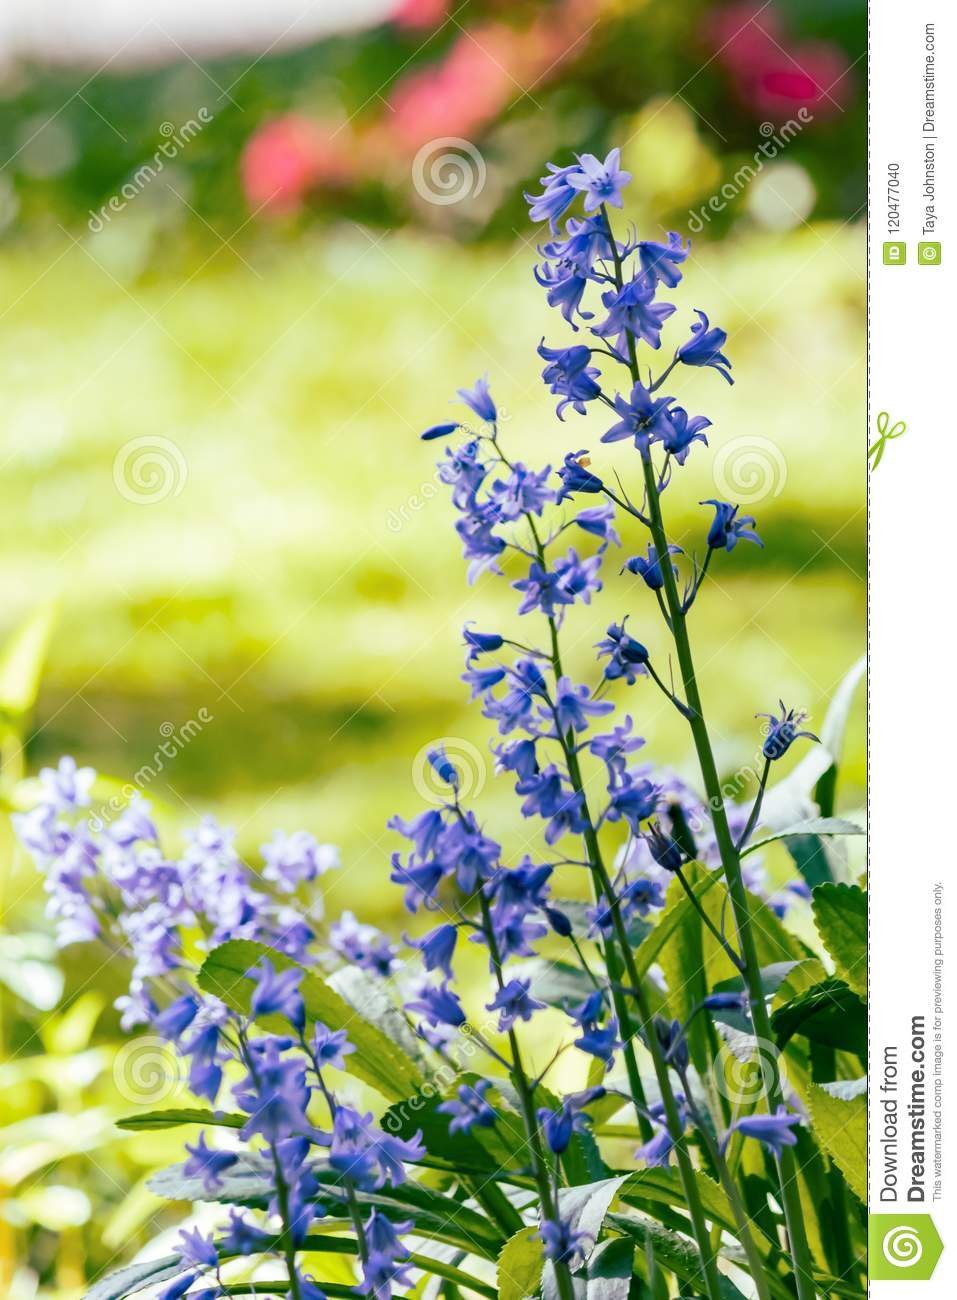 Tall Blue Wild Flowers Stock Photo Image Of Summer 120477040